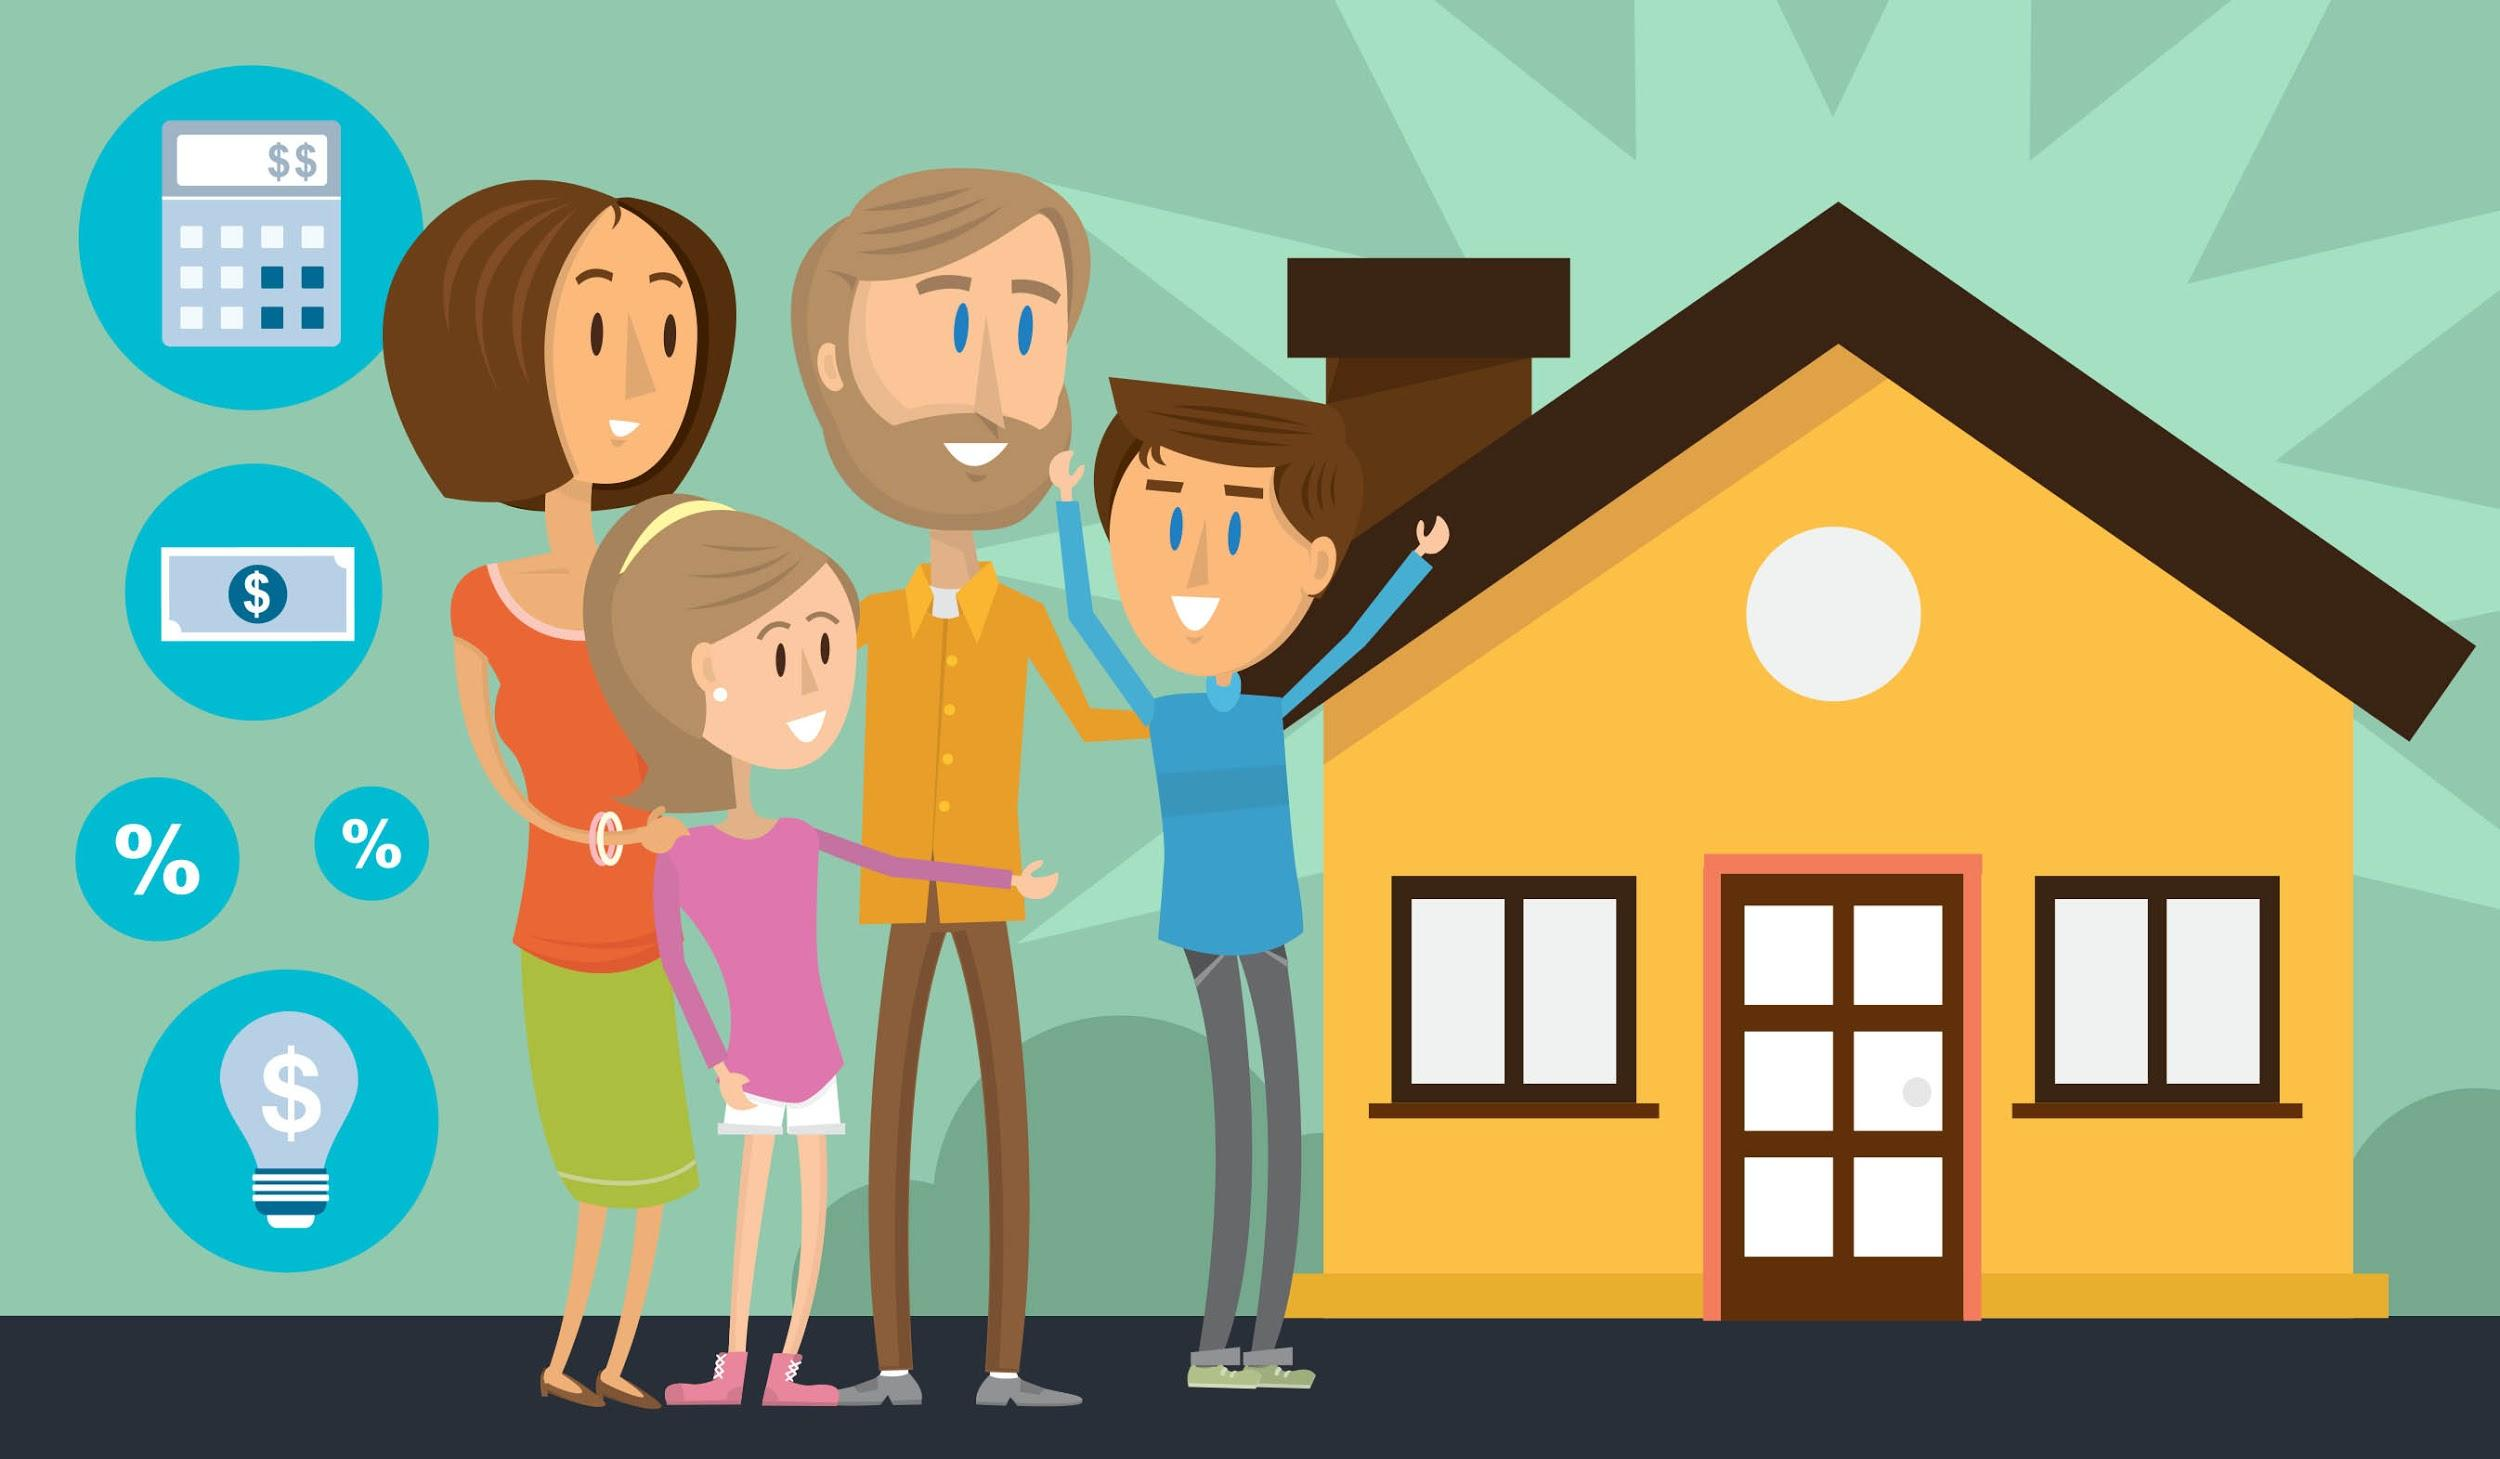 Family happy in front of house illustration